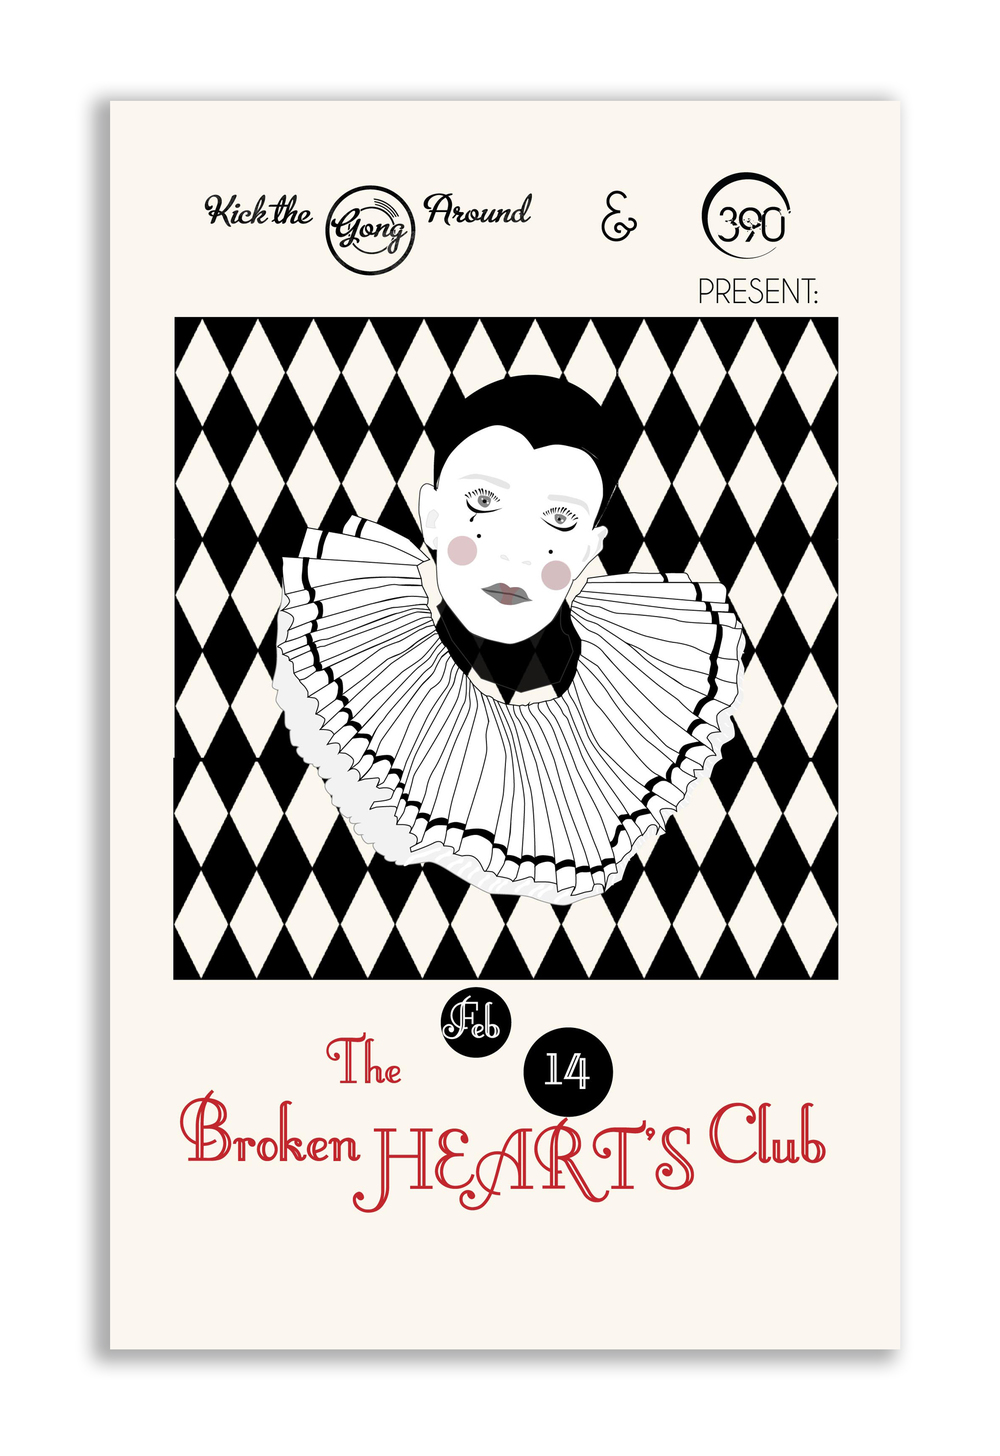 The Broken Heart's Club